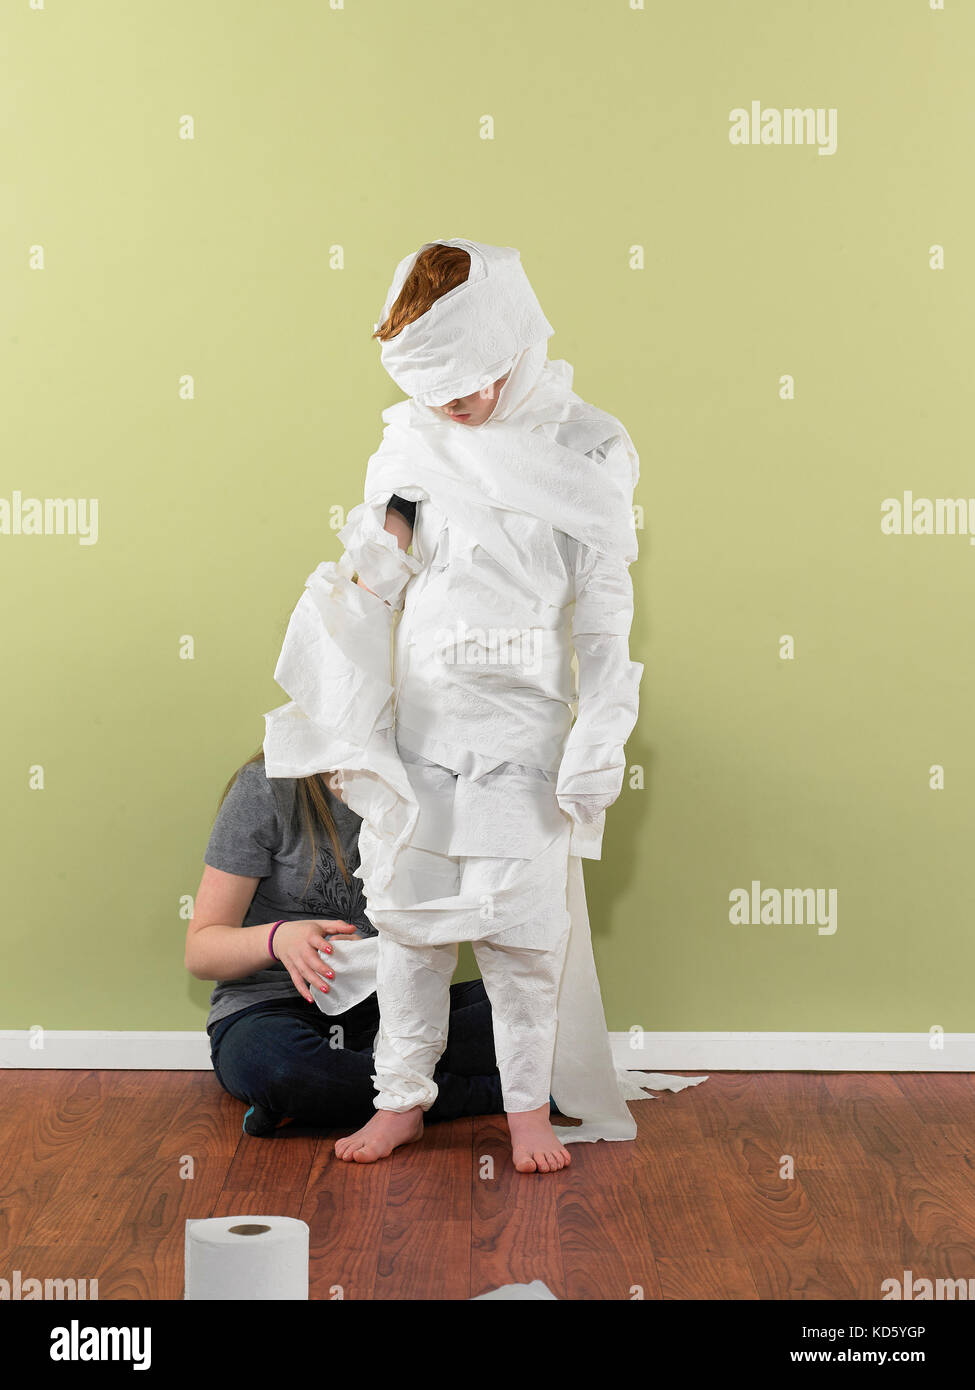 Teen girl wrapping boy in toilet paper - Stock Image